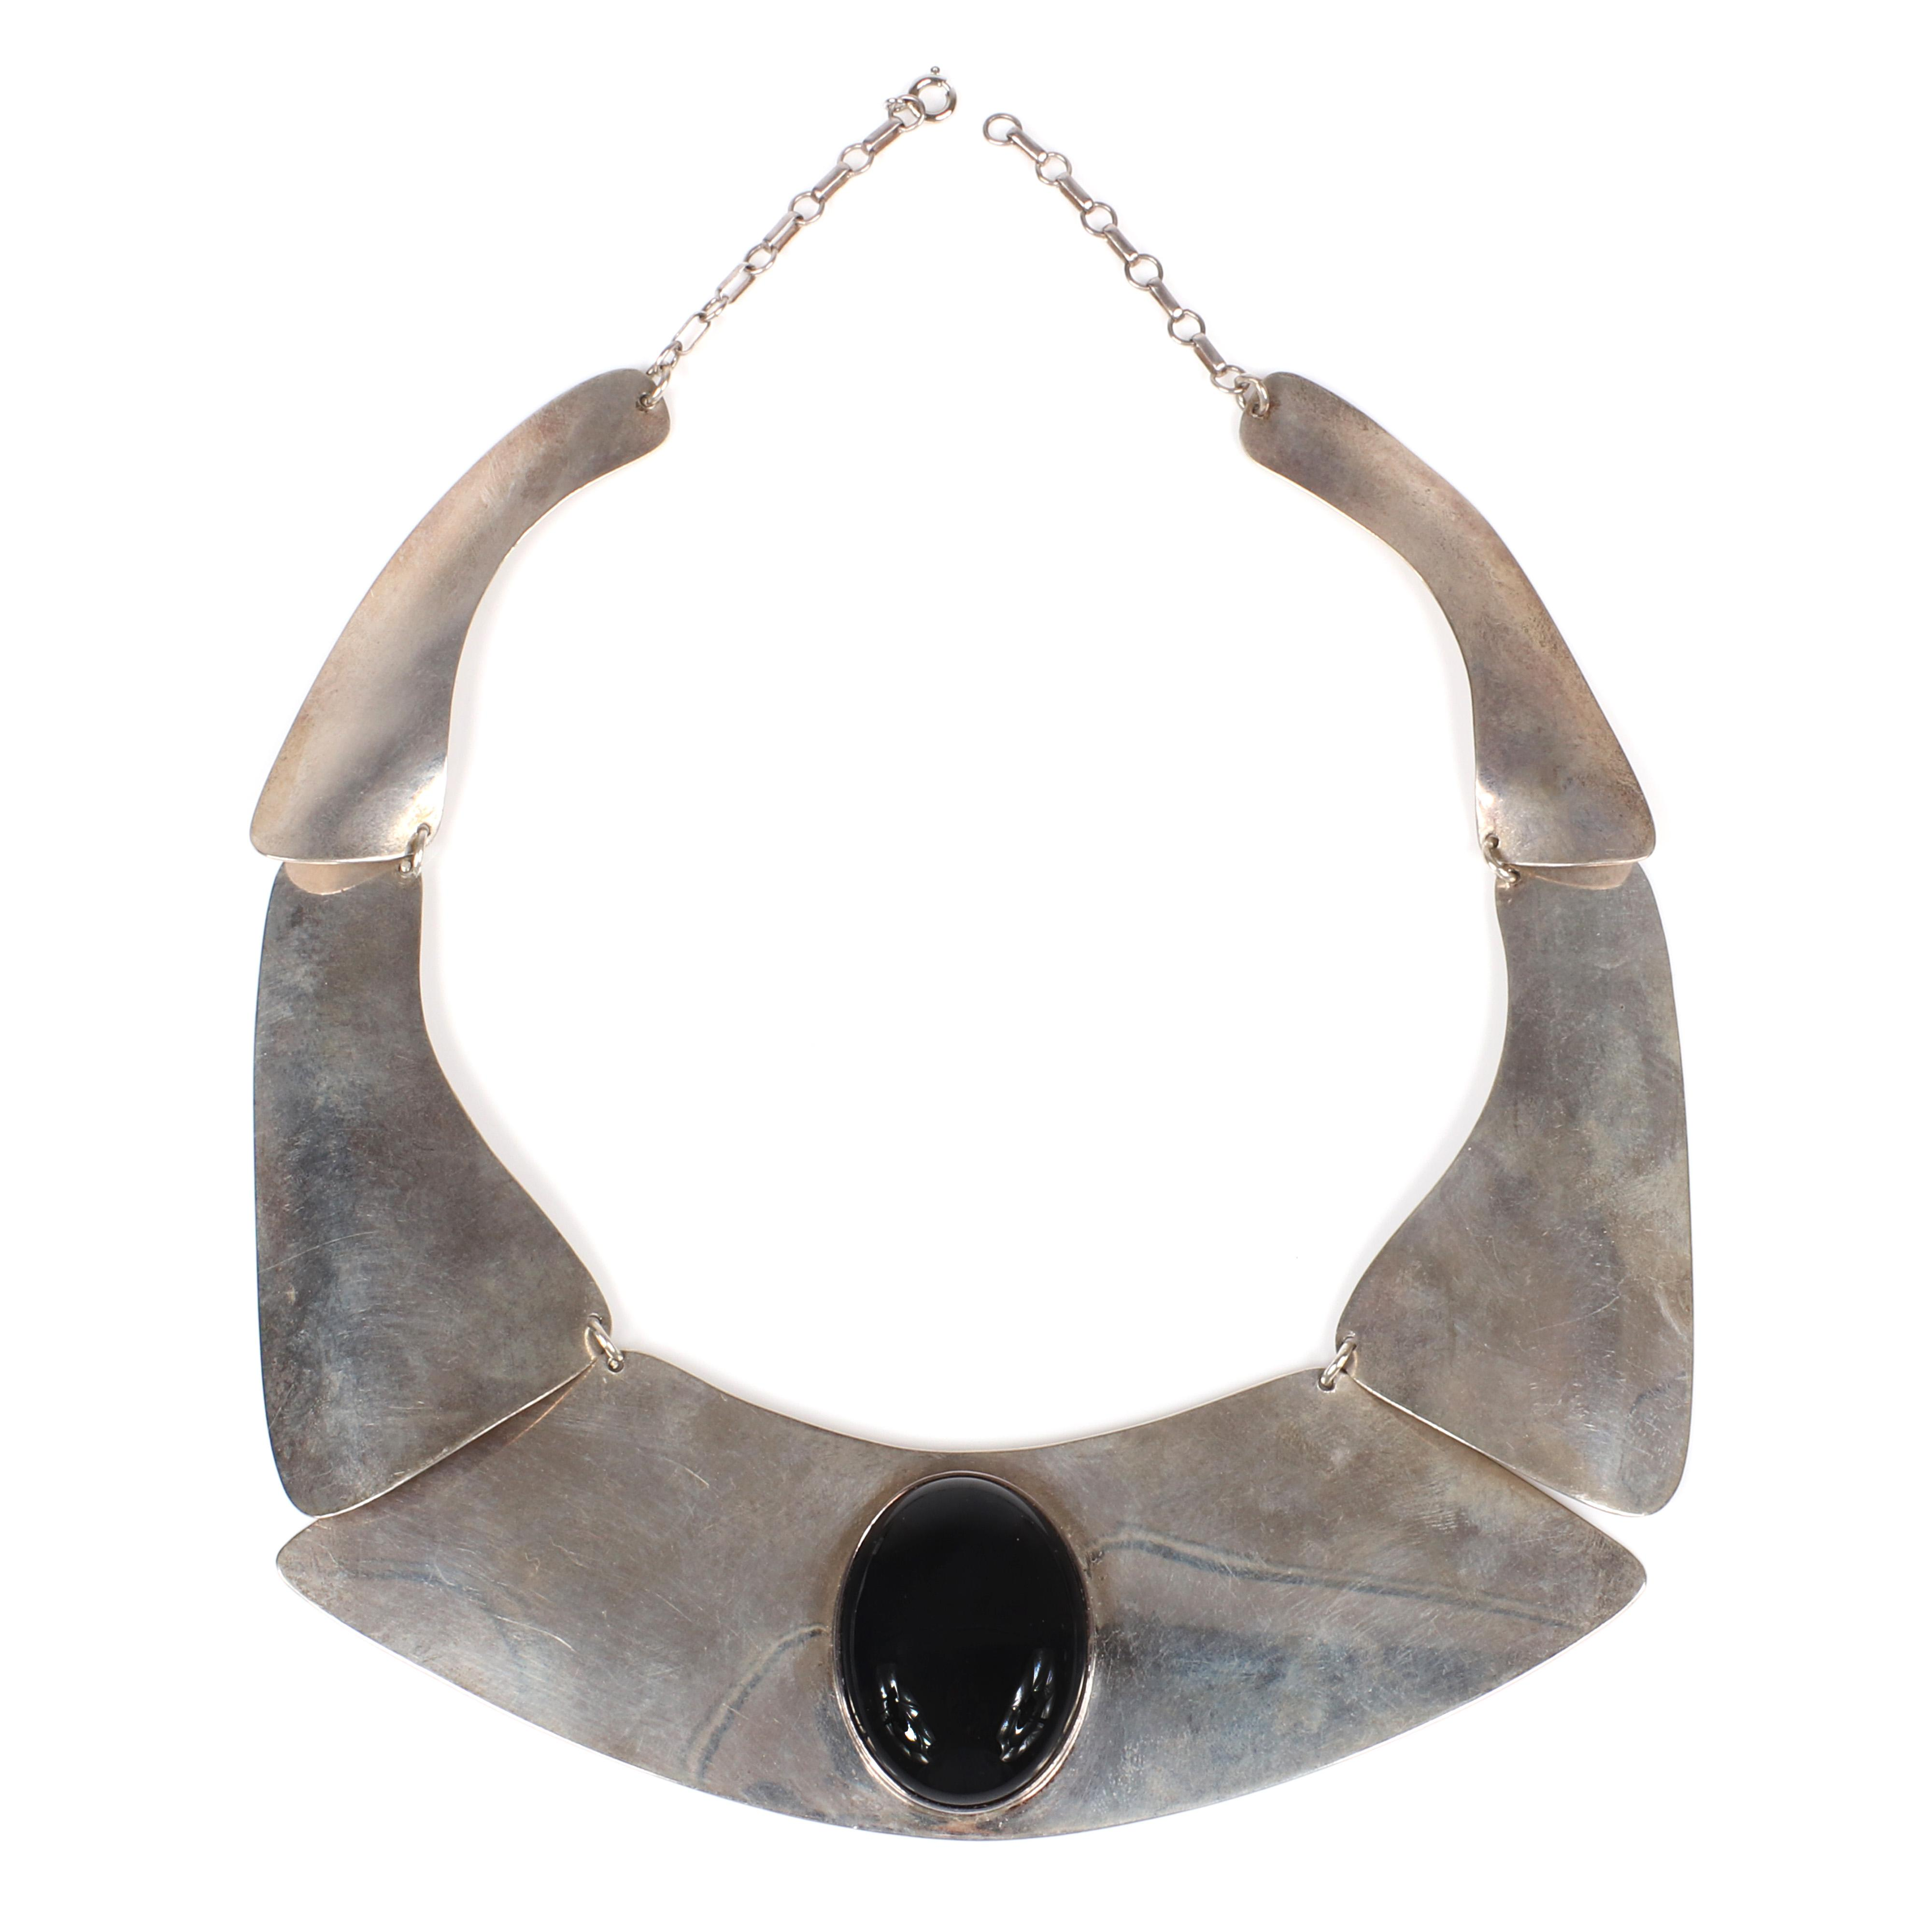 """Aaron Rubenstein Modernist artisan sterling silver linked panel collar necklace with large black onyx cabochon stone, dated 6/30/86. 18""""L, 2""""drop"""